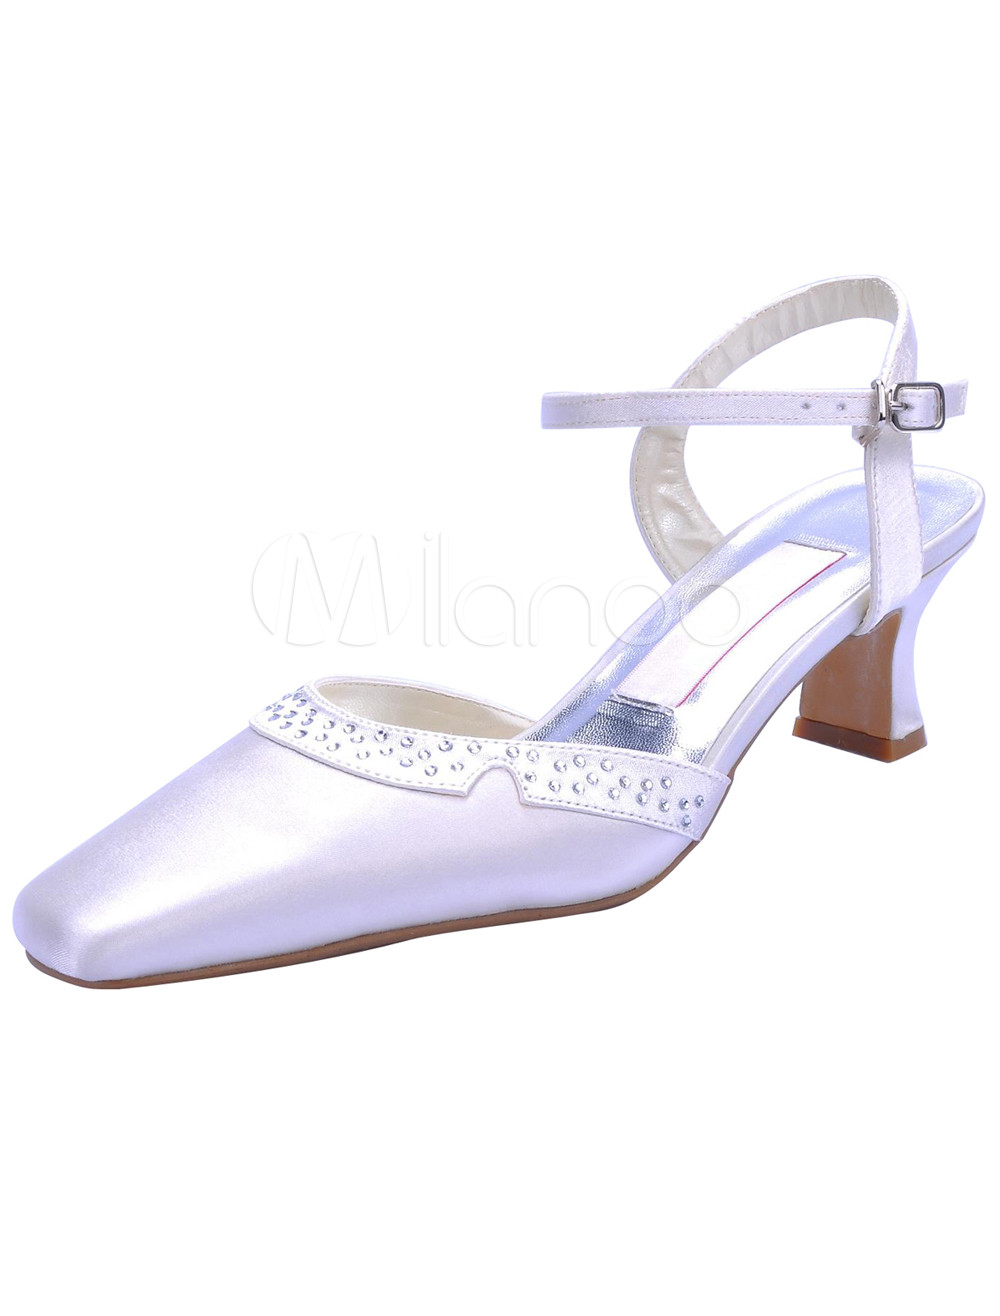 42ca821e5d55 ... Toe Sandals Wedding Shoes With Bowknot Missydress. Previous Next. image  0 · vintage white satin low heel wedding shoes no 4 ...